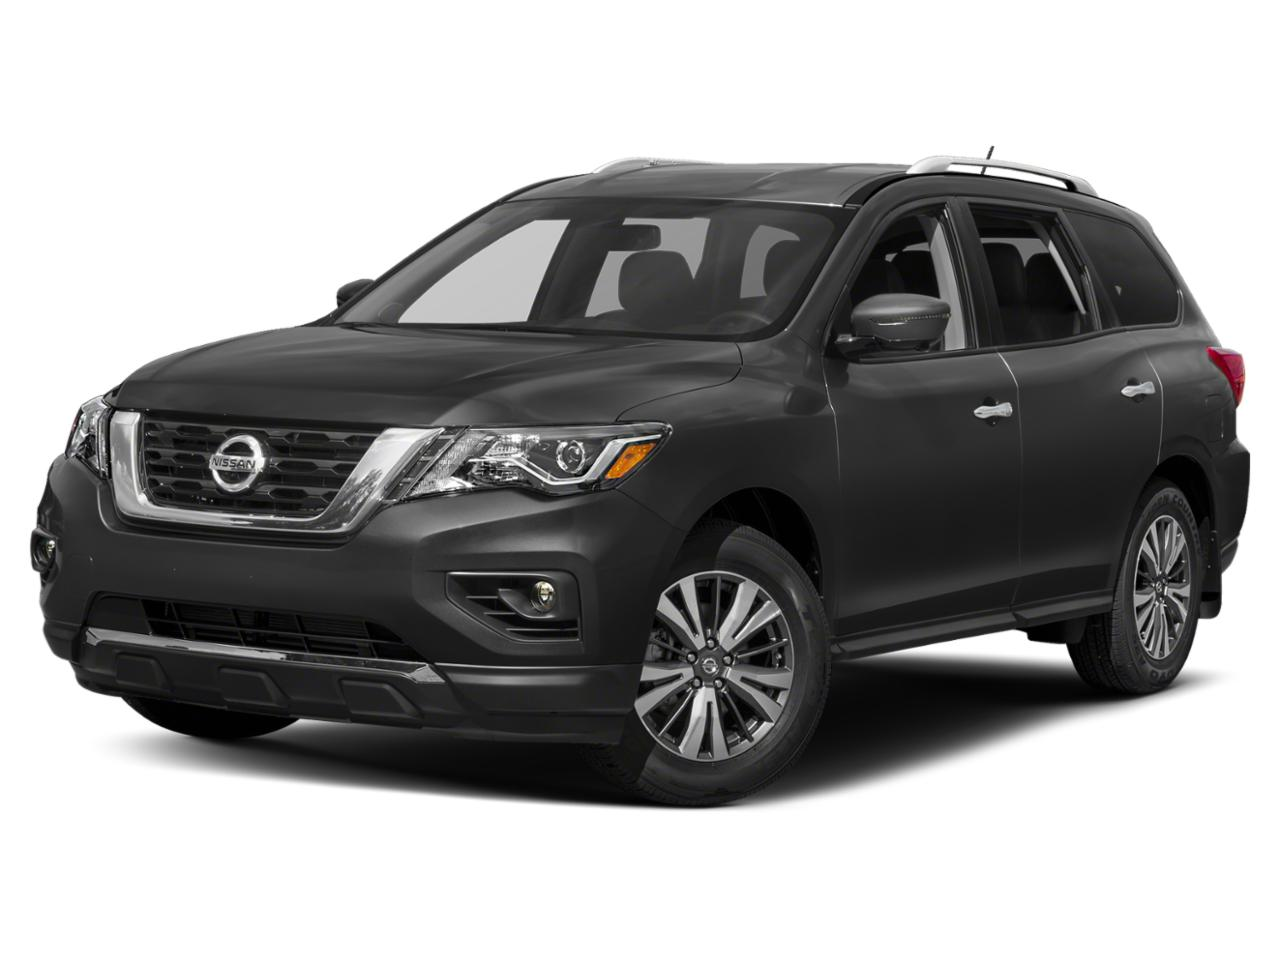 2020 Nissan Pathfinder Vehicle Photo in Appleton, WI 54913